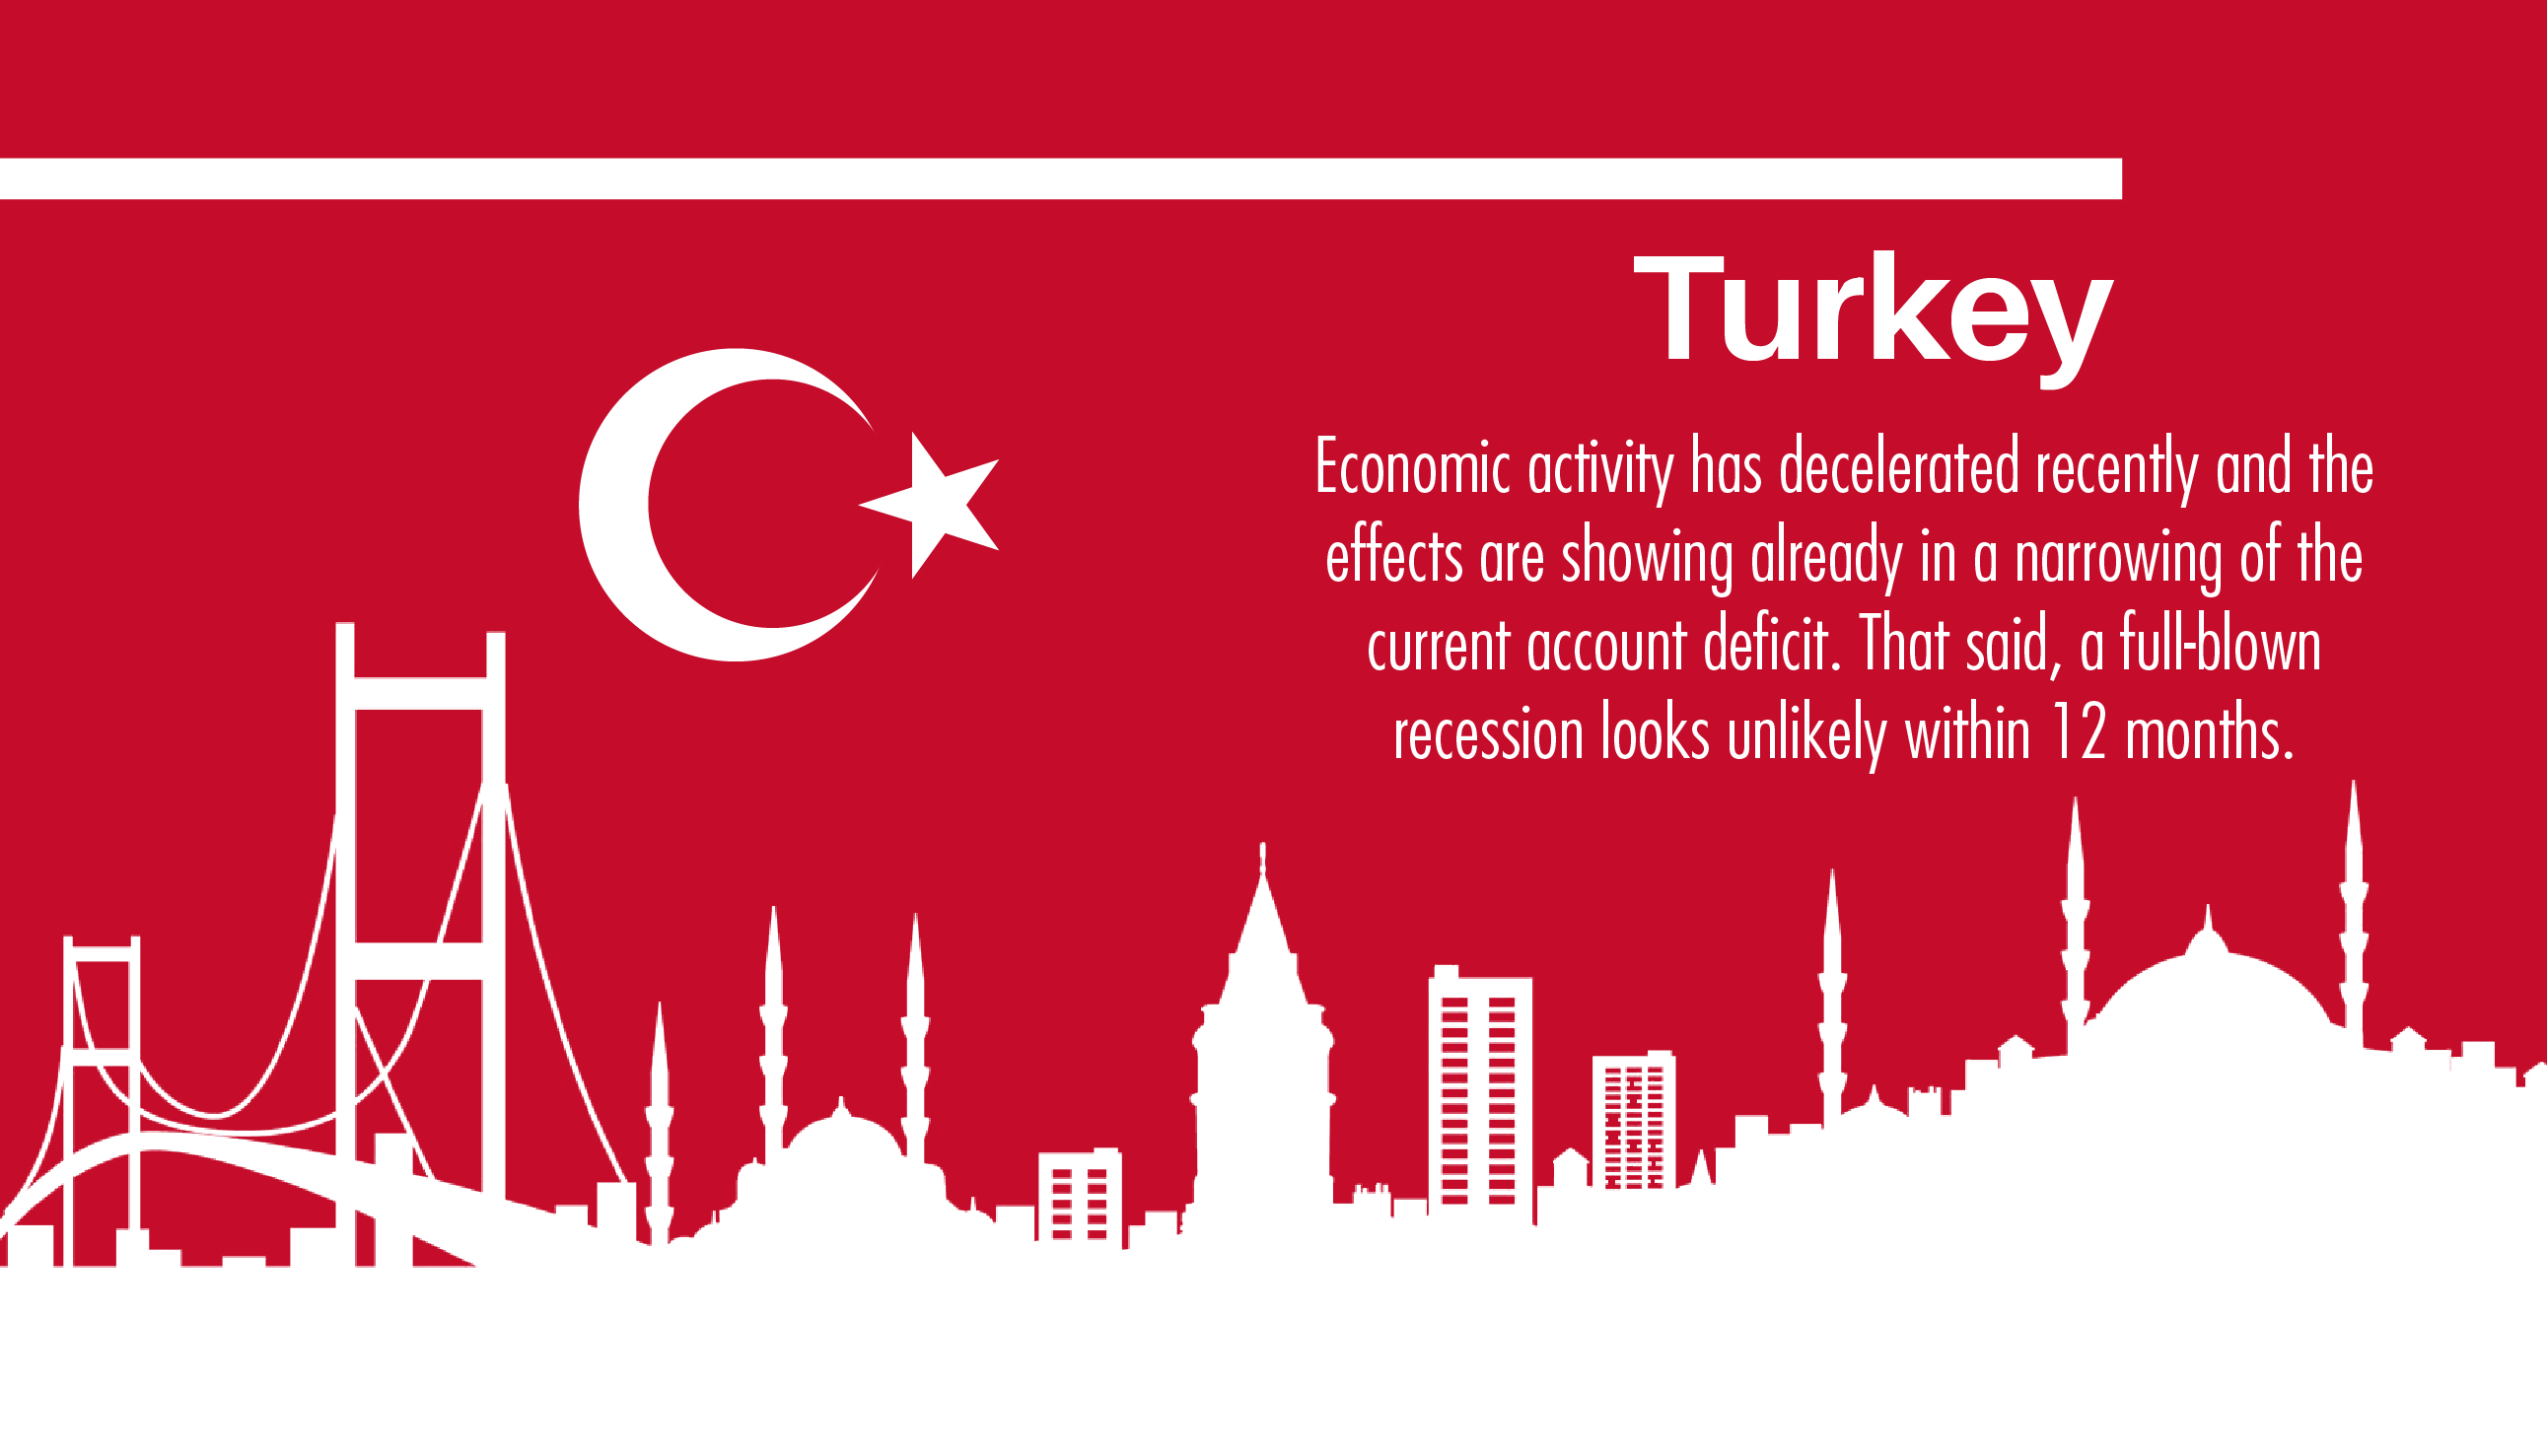 Turkey: Business cycle